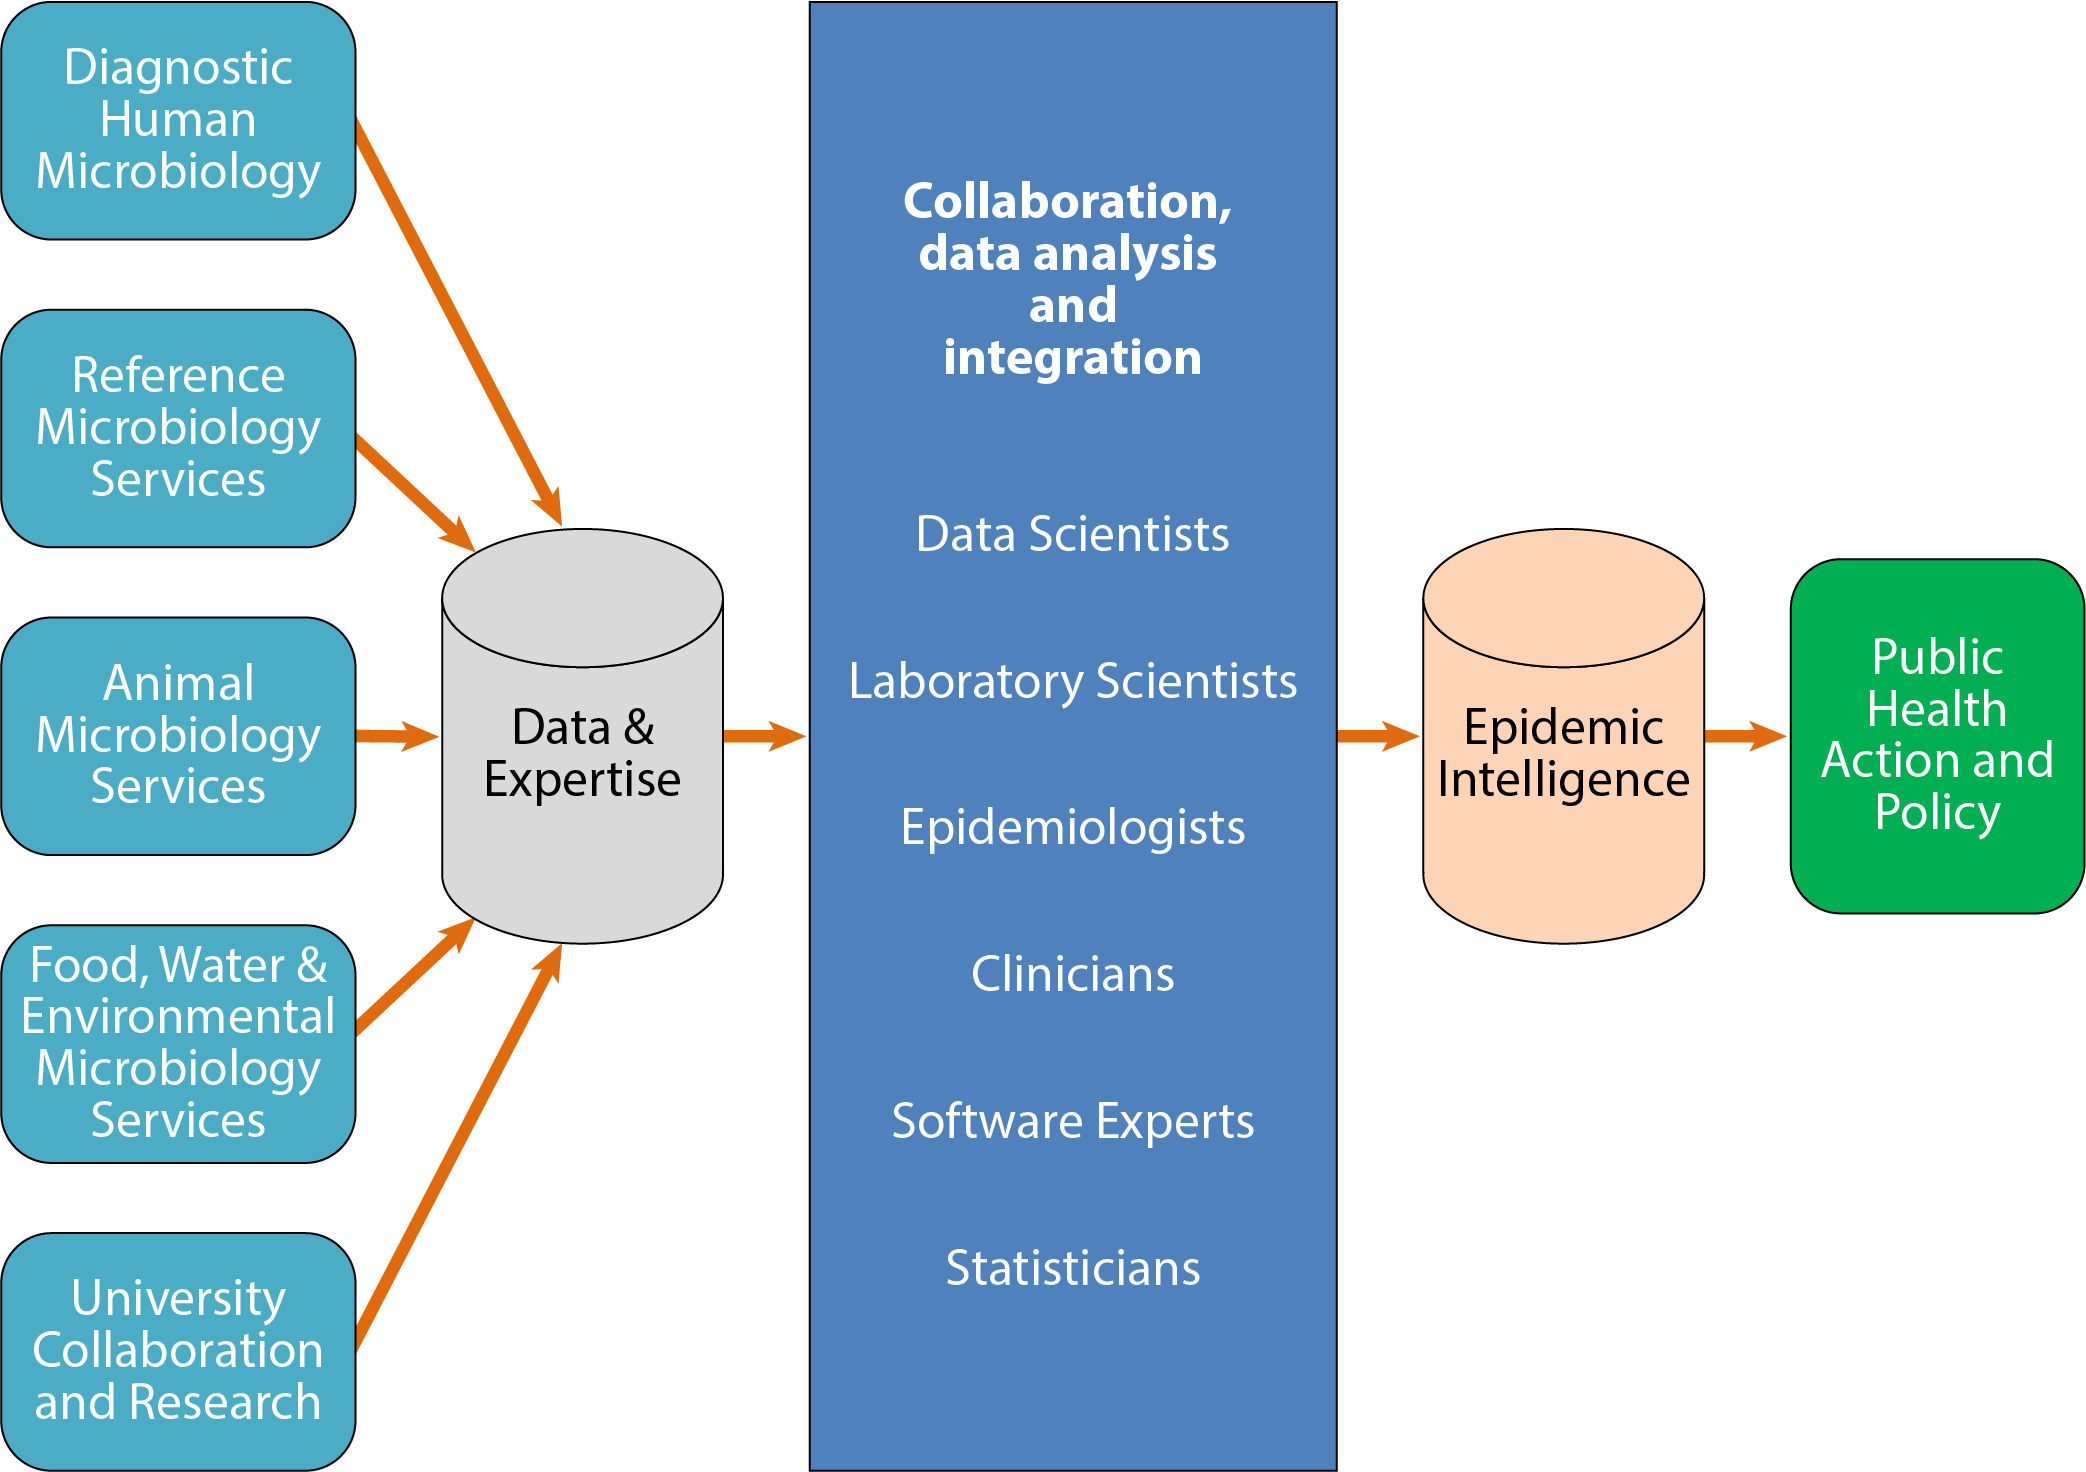 This flow diagram displays the key elements and outcomes for the Public Health Microbiology. Data feed is received by the information system from Diagnostic Human Microbiology and Reference Microbiology Services; Animal Microbiology Services; Food, Water & Environmental Microbiology Services, University Collaboration and Research. Expert advice on epidemic surveillance for collaboration, data analysis and integration is provided by Data Scientists, Laboratory Scientists, Epidemiologists, Clinicians, Software Experts and Statisticians to define and shape Public Health Action and Policy.